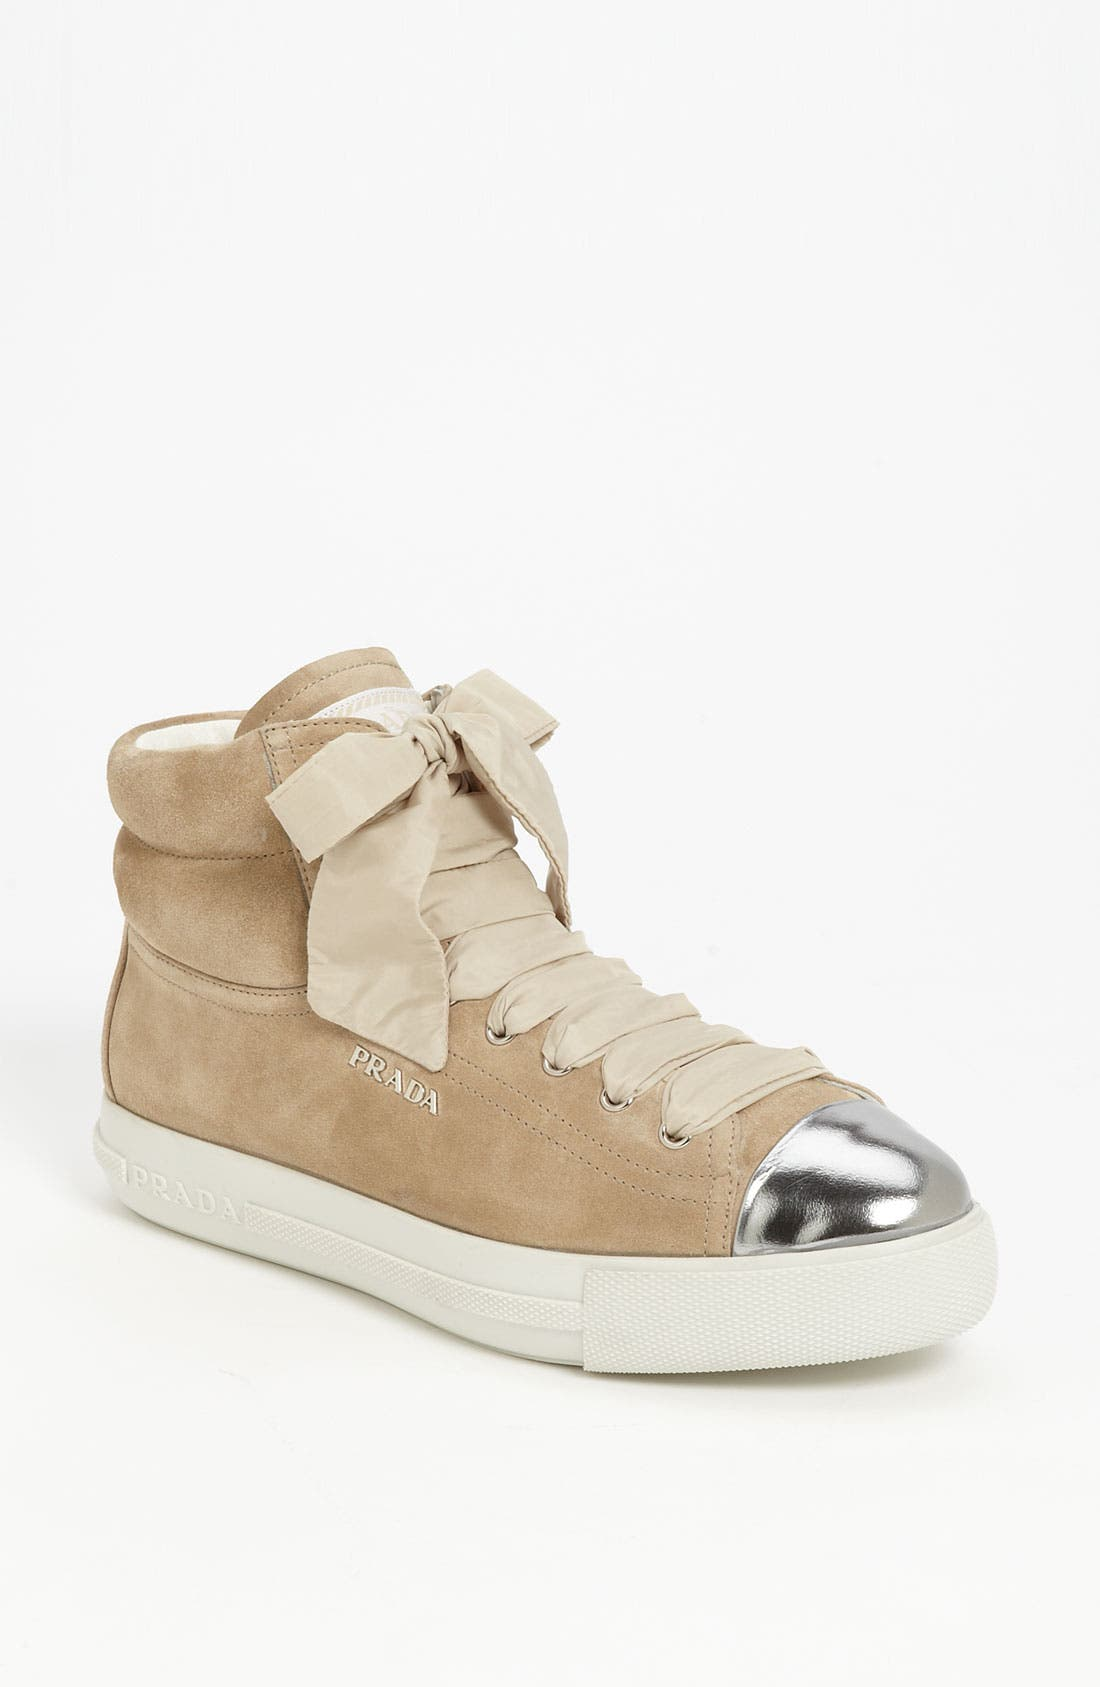 High Sneaker,                             Main thumbnail 1, color,                             Beige